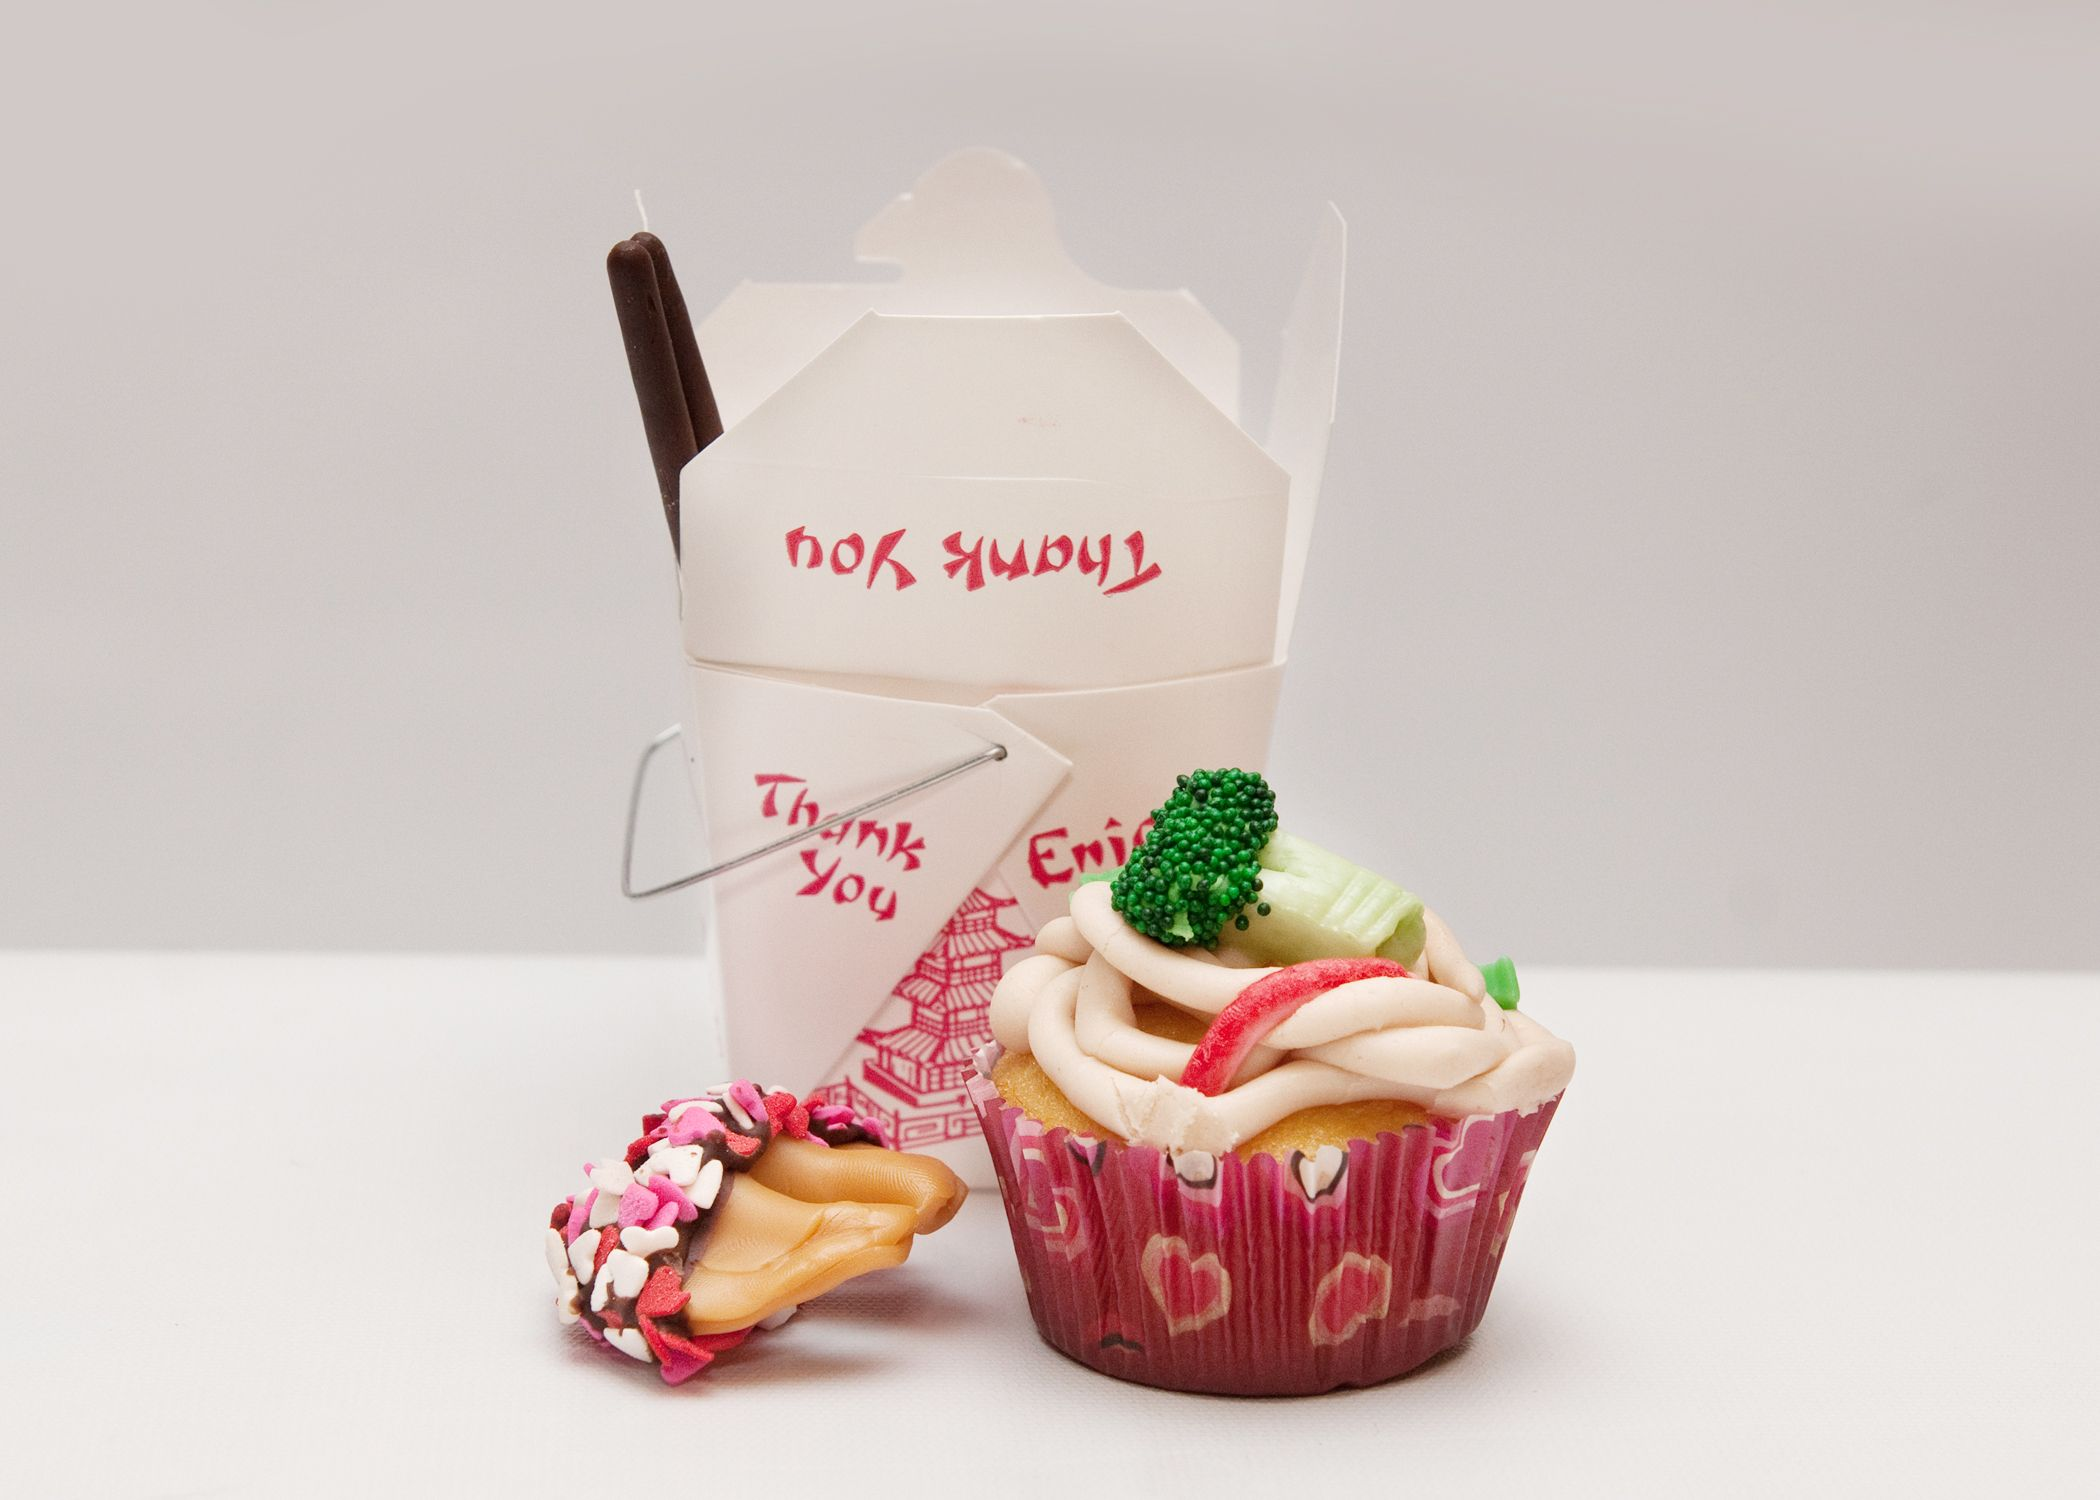 Chinese take out cupcakes | FOOD BABY | Pinterest